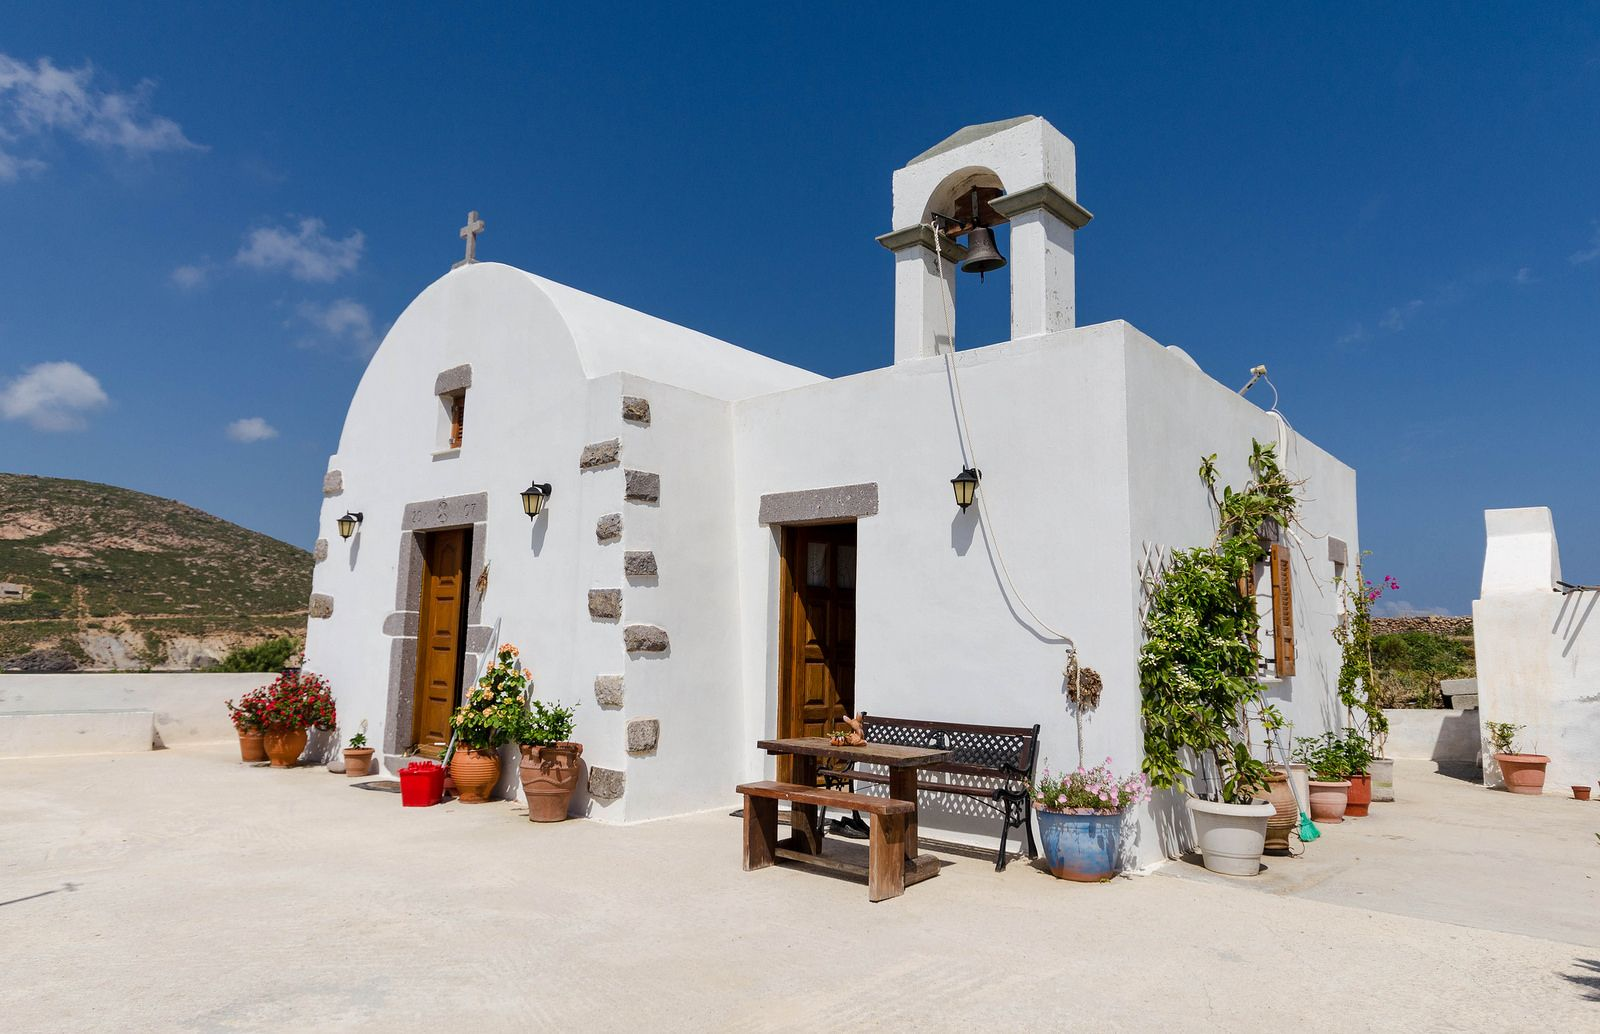 Little church in Patmos, Greece | by RomanK.